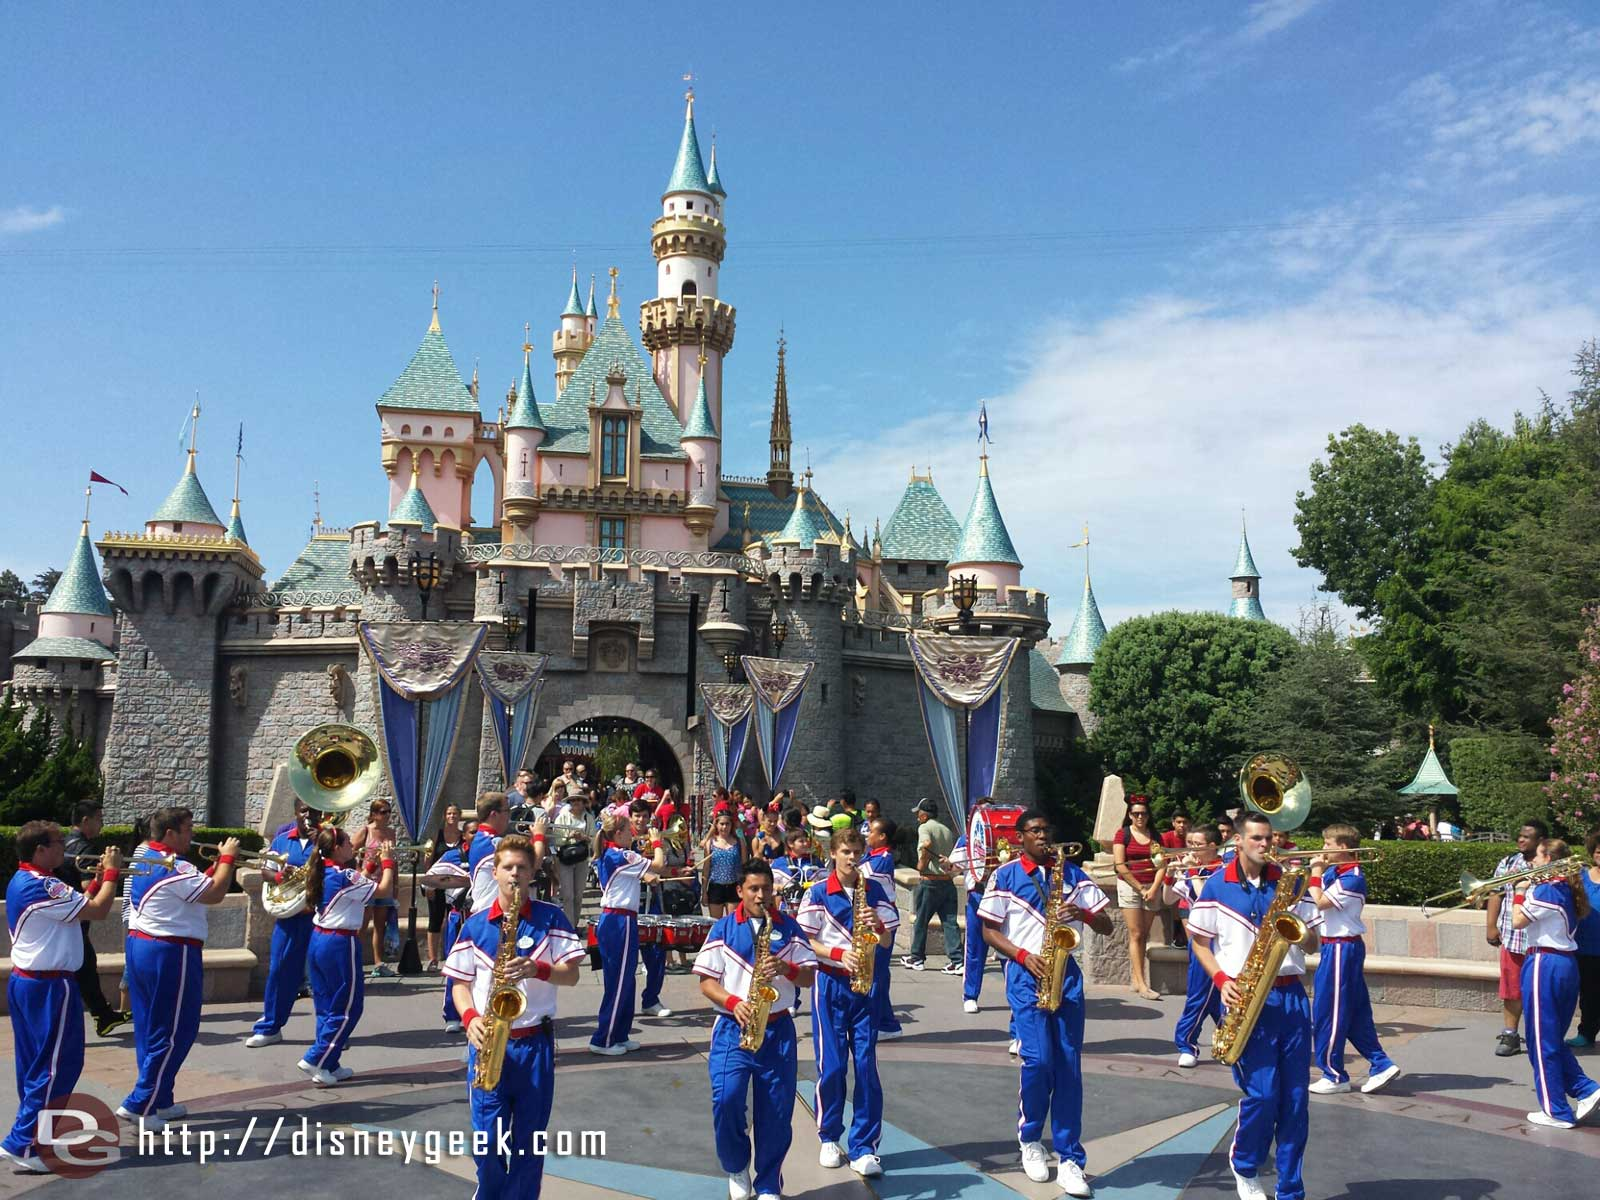 2014 #Disneyland All-American College Band performing in front of Sleeping Beauty Castle